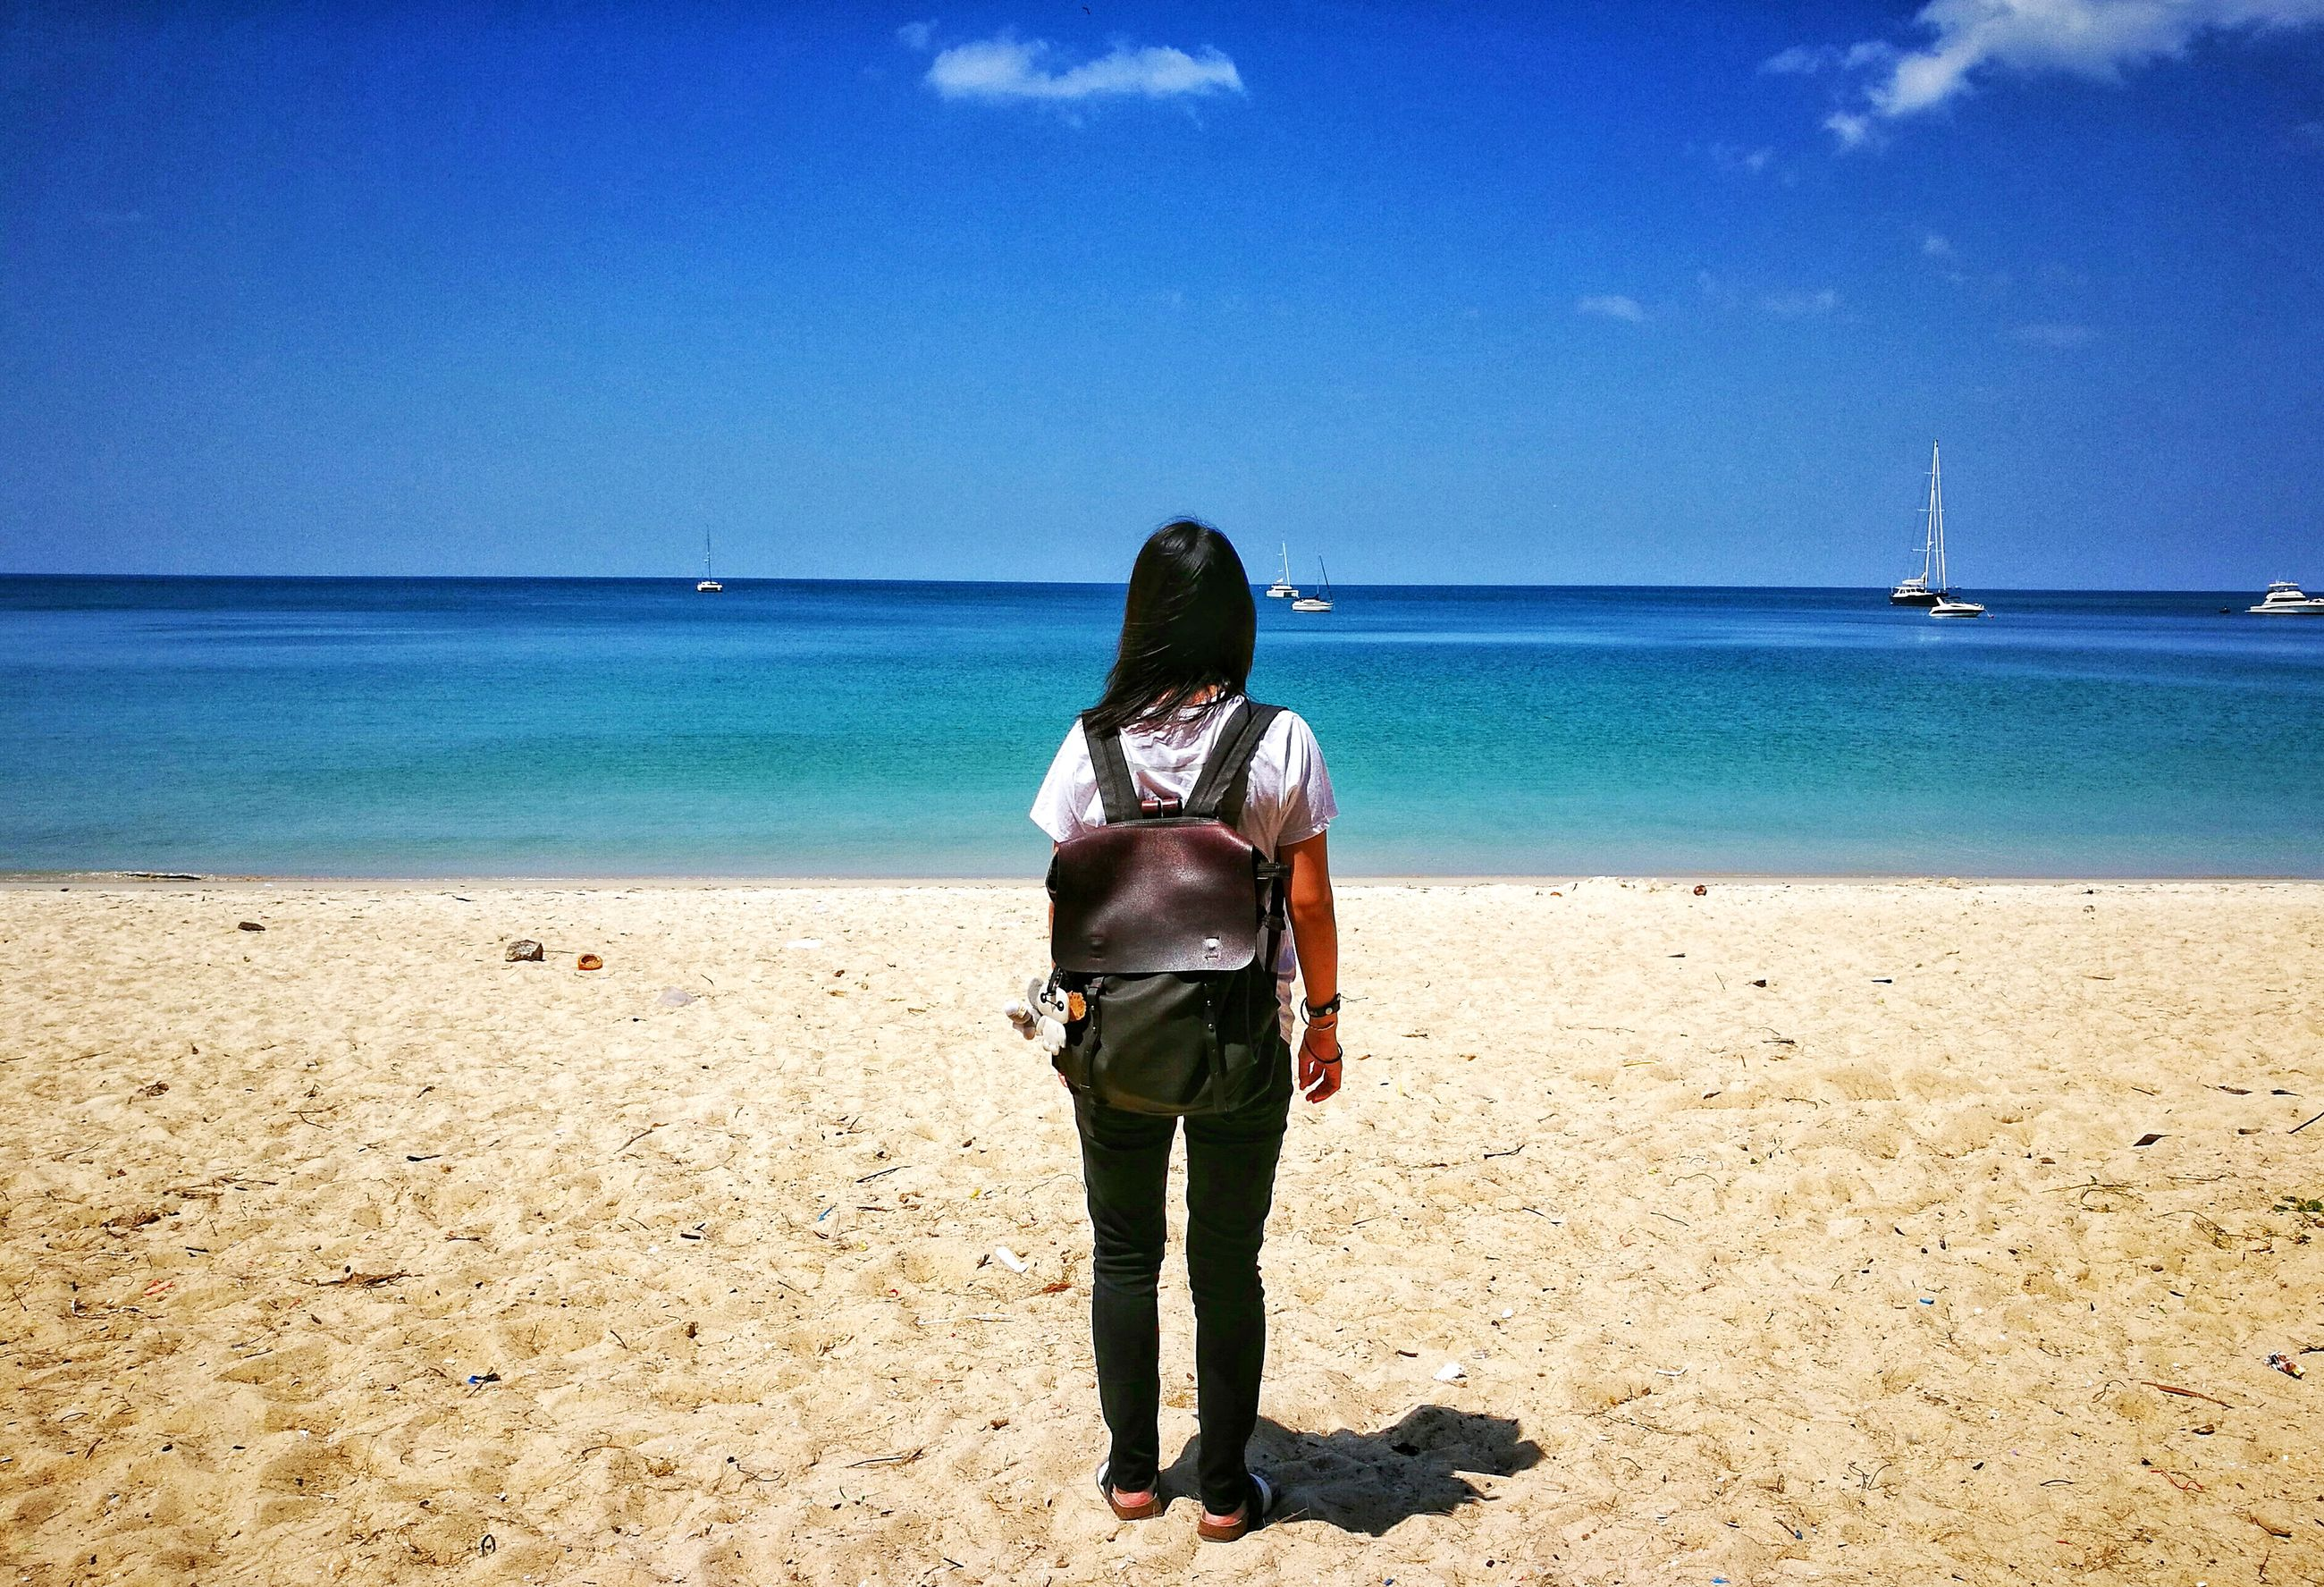 rear view, sea, horizon over water, beach, real people, water, sky, blue, one person, beauty in nature, leisure activity, sunlight, scenics, sand, outdoors, standing, nature, tranquility, day, men, adult, adults only, people